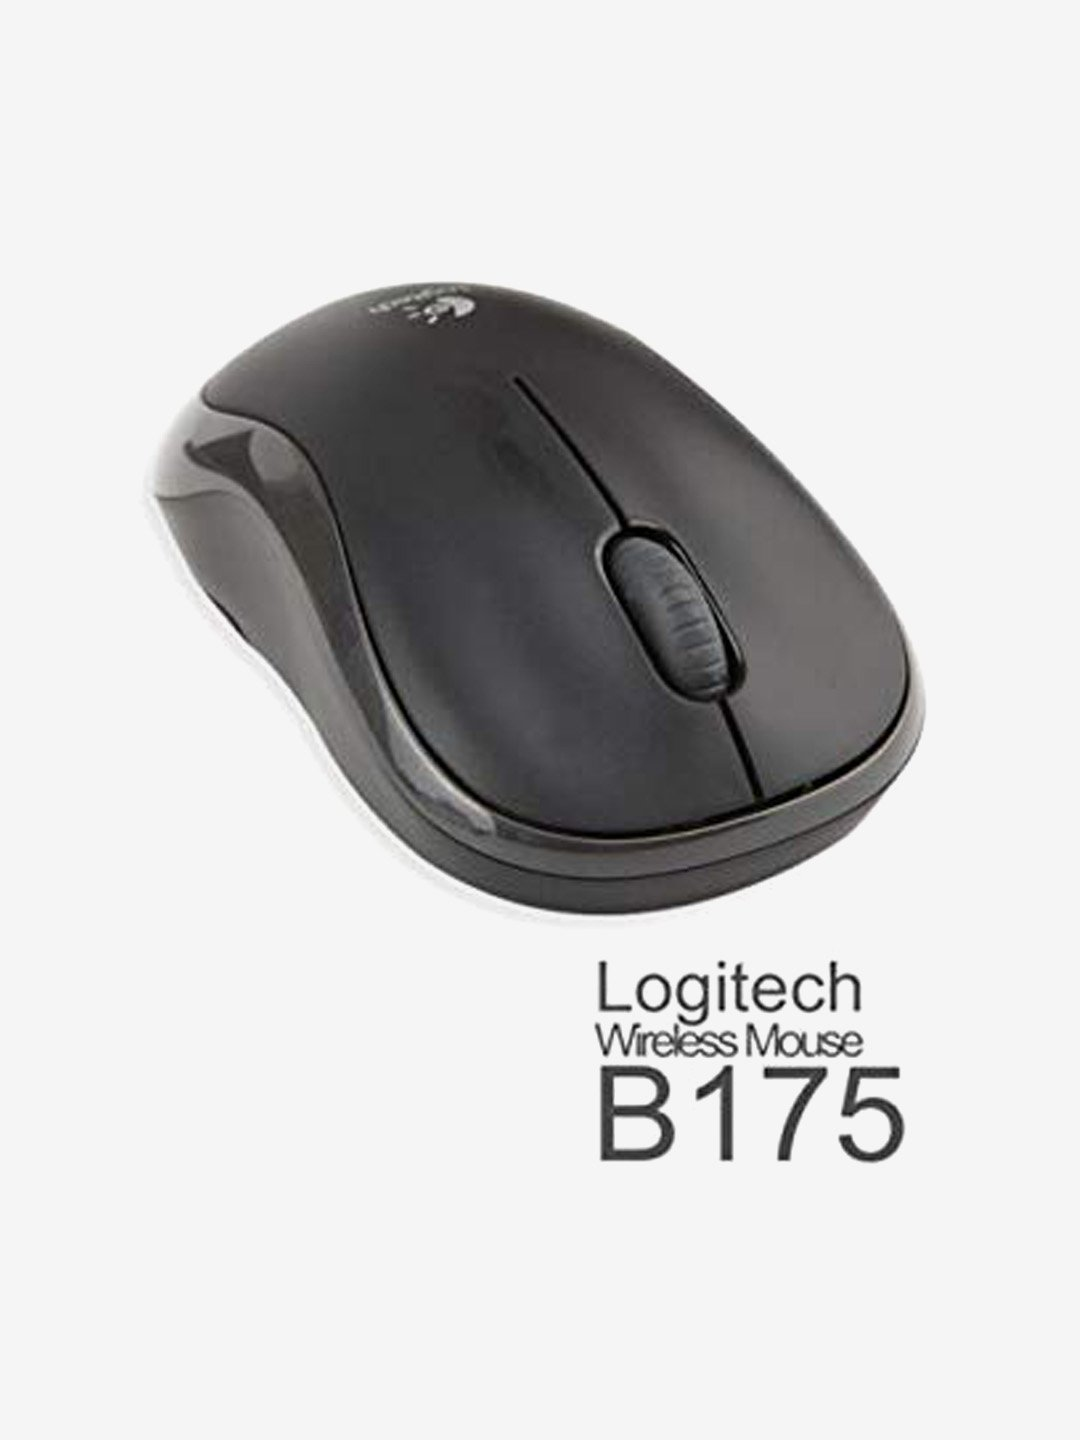 Logitech B175 Wireless Mouse (Black) from Logitech at best prices on Tata CLiQ